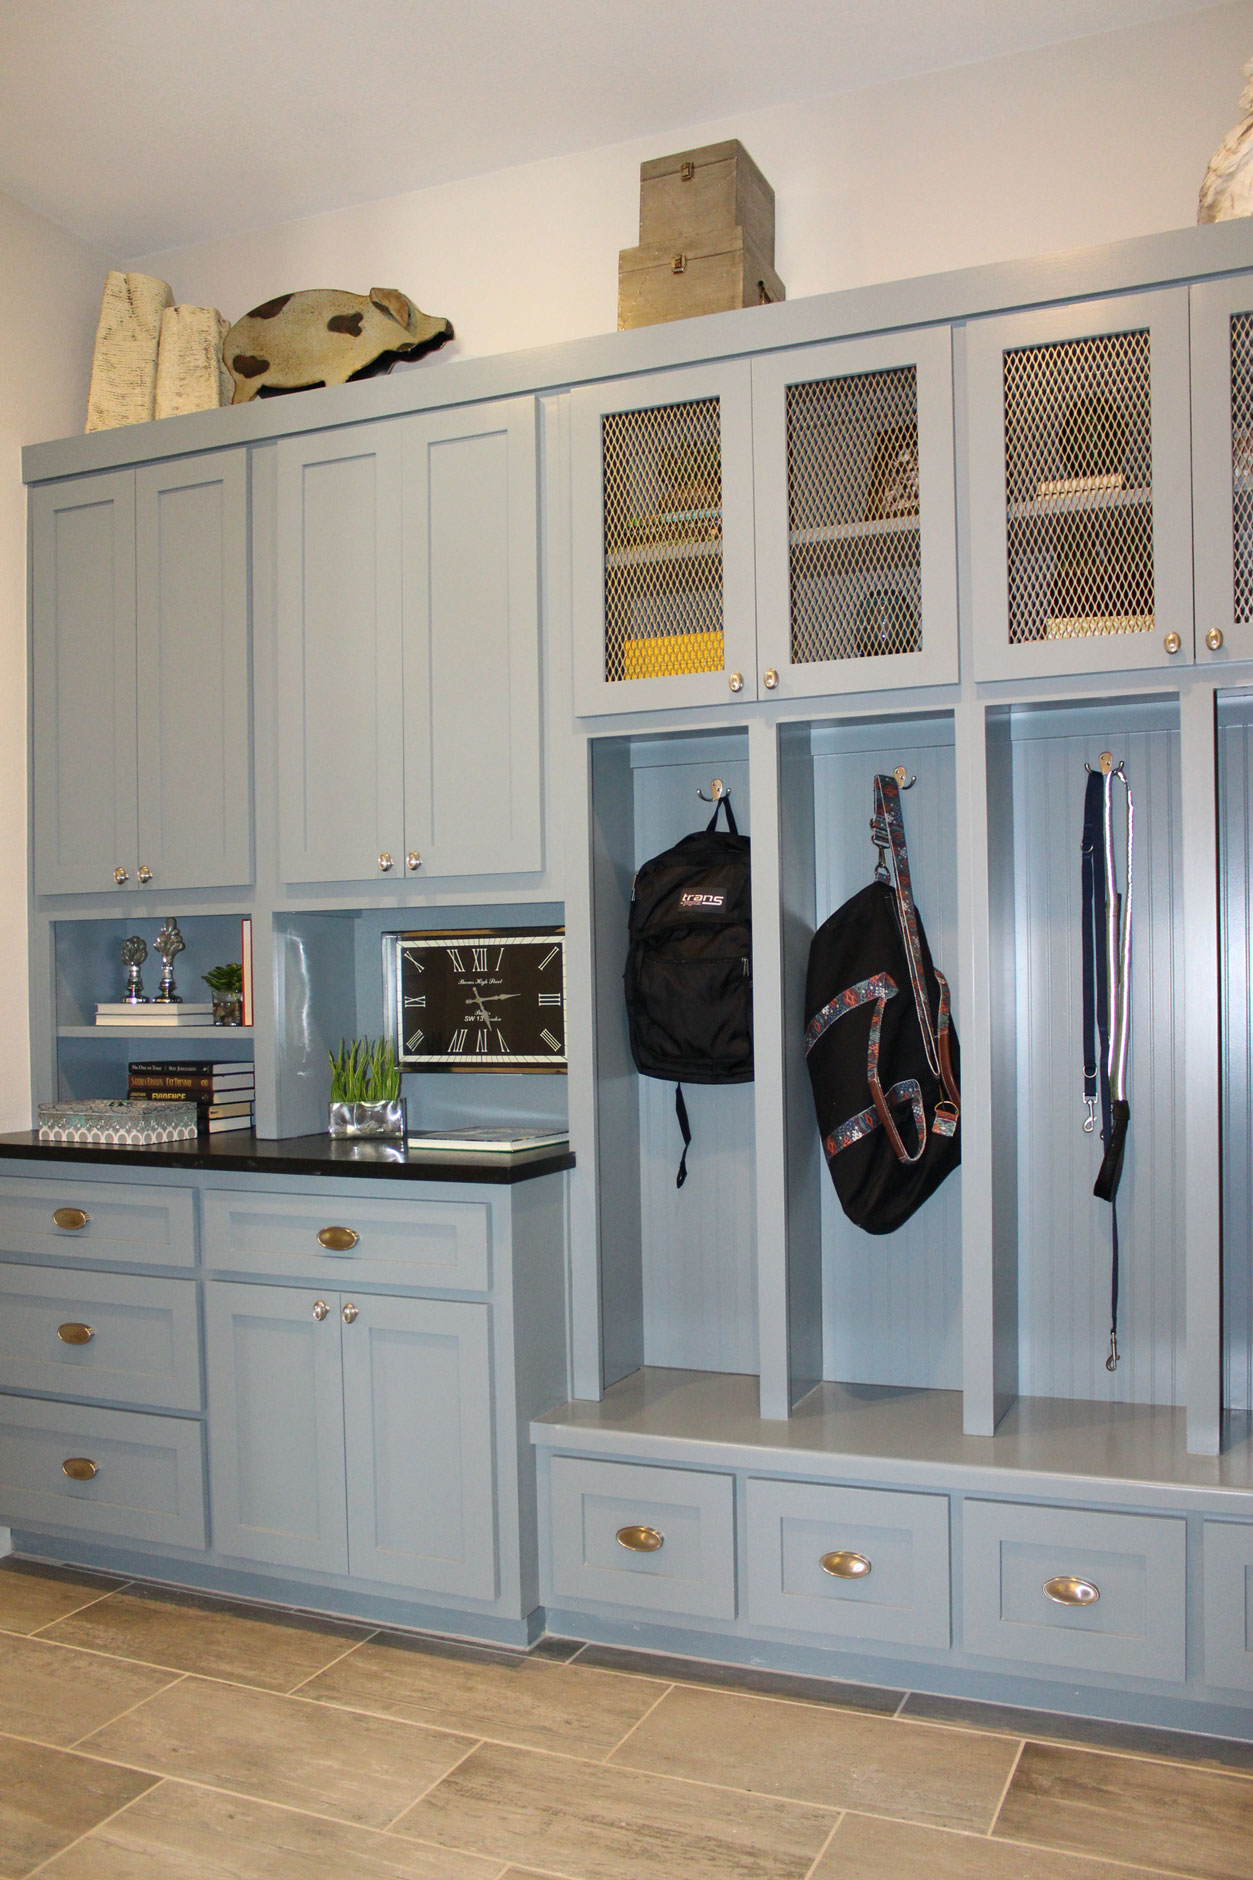 Burrows Cabinets mud room storage cabinets painted gray-blue